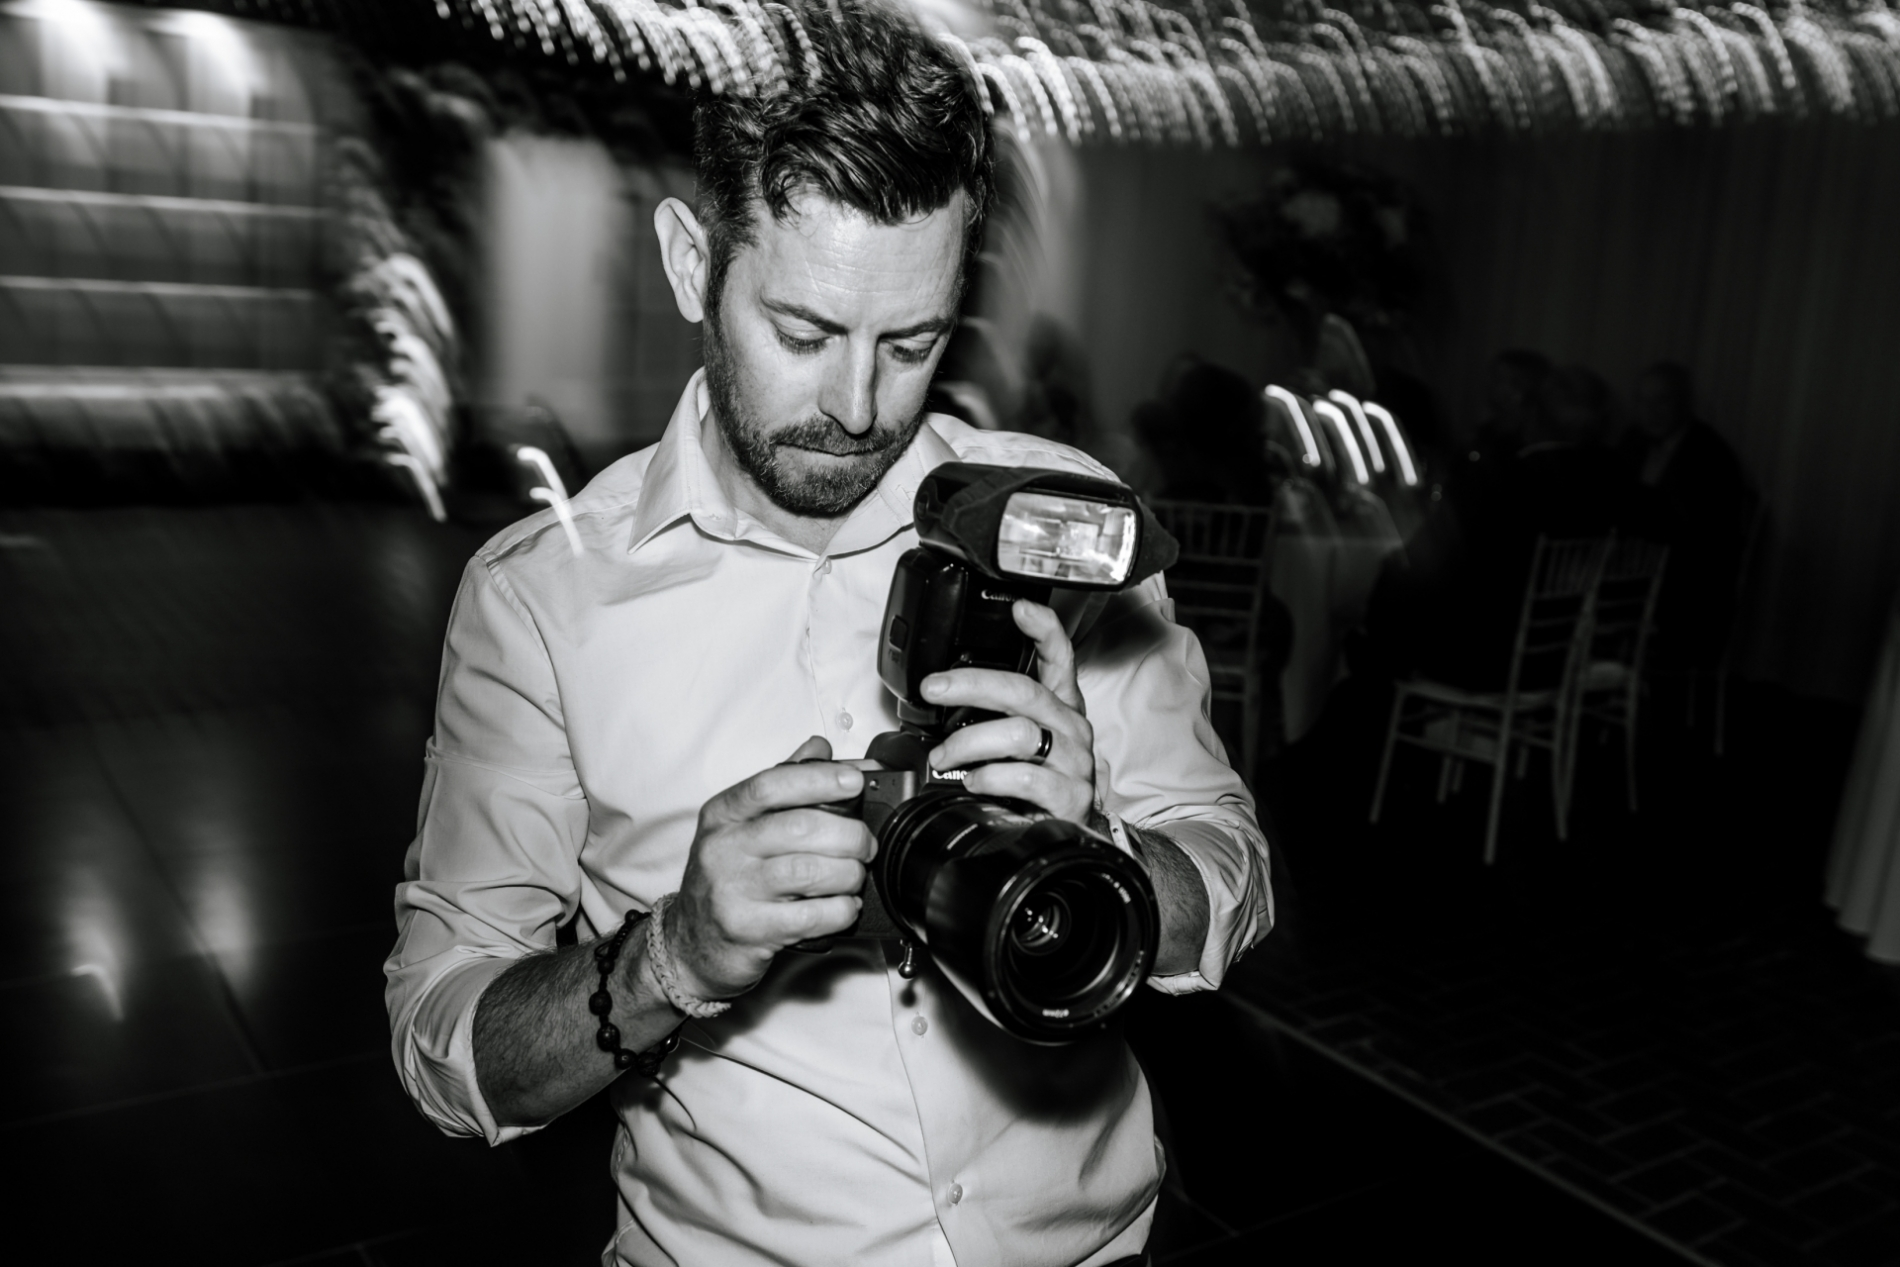 Liverpool Wedding Photographer working at the reception party - Black and white photo